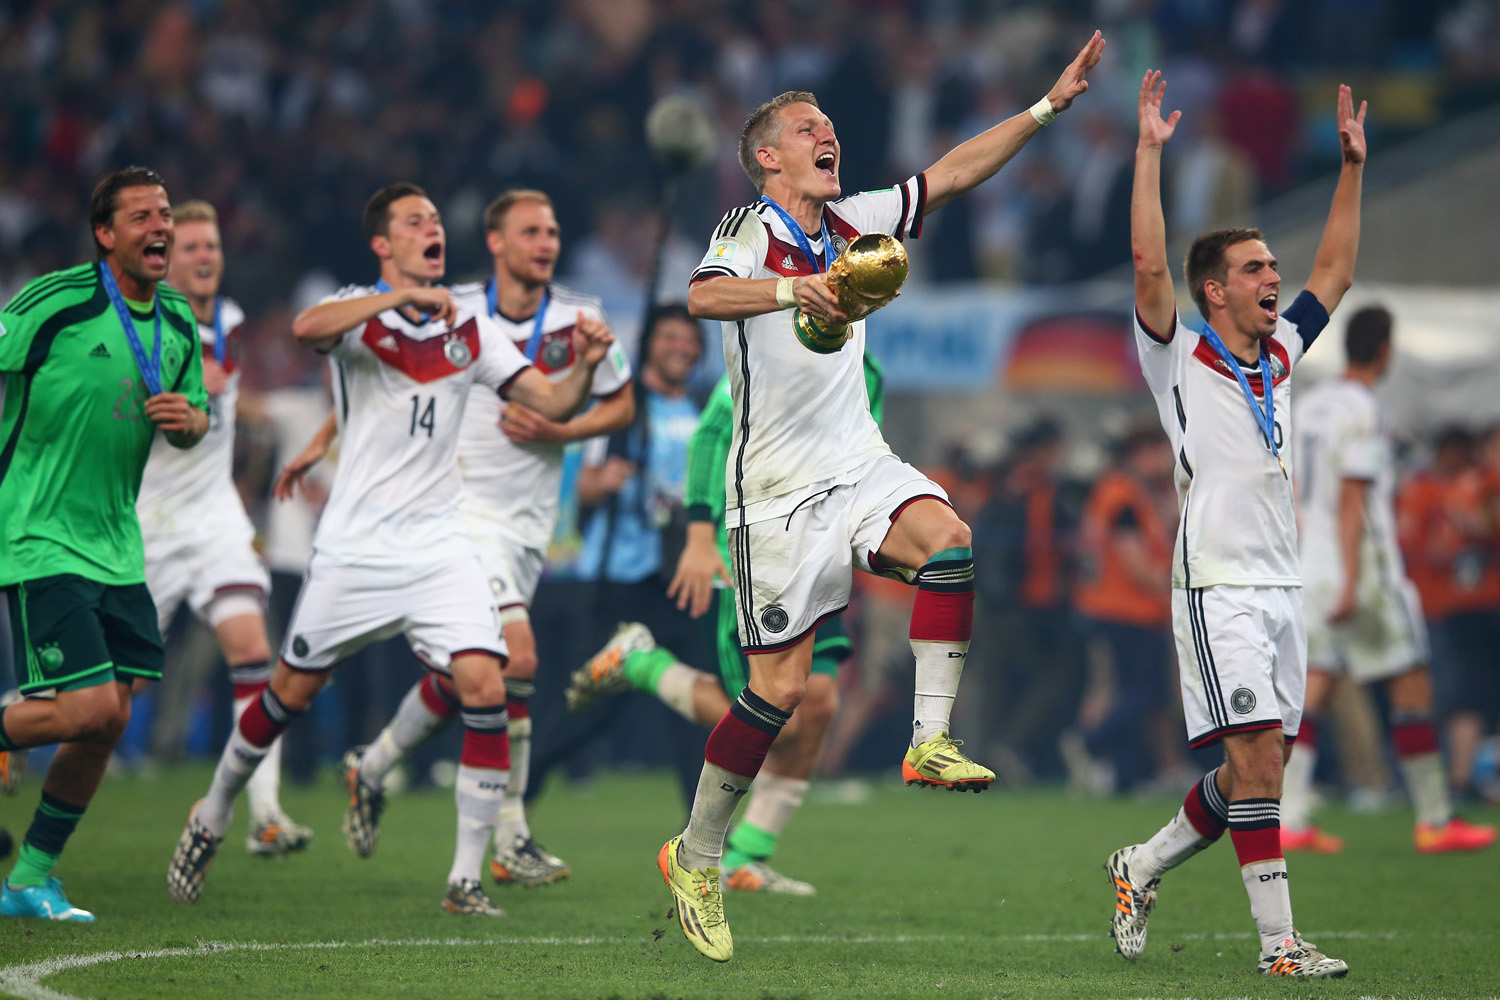 Jul. 13, 2014.  Bastian Schweinsteiger of Germany celebrates with the World Cup trophy after defeating Argentina 1-0 in extra time during the 2014 FIFA World Cup Brazil Final match between Germany and Argentina at Maracana in Rio de Janeiro, Brazil.